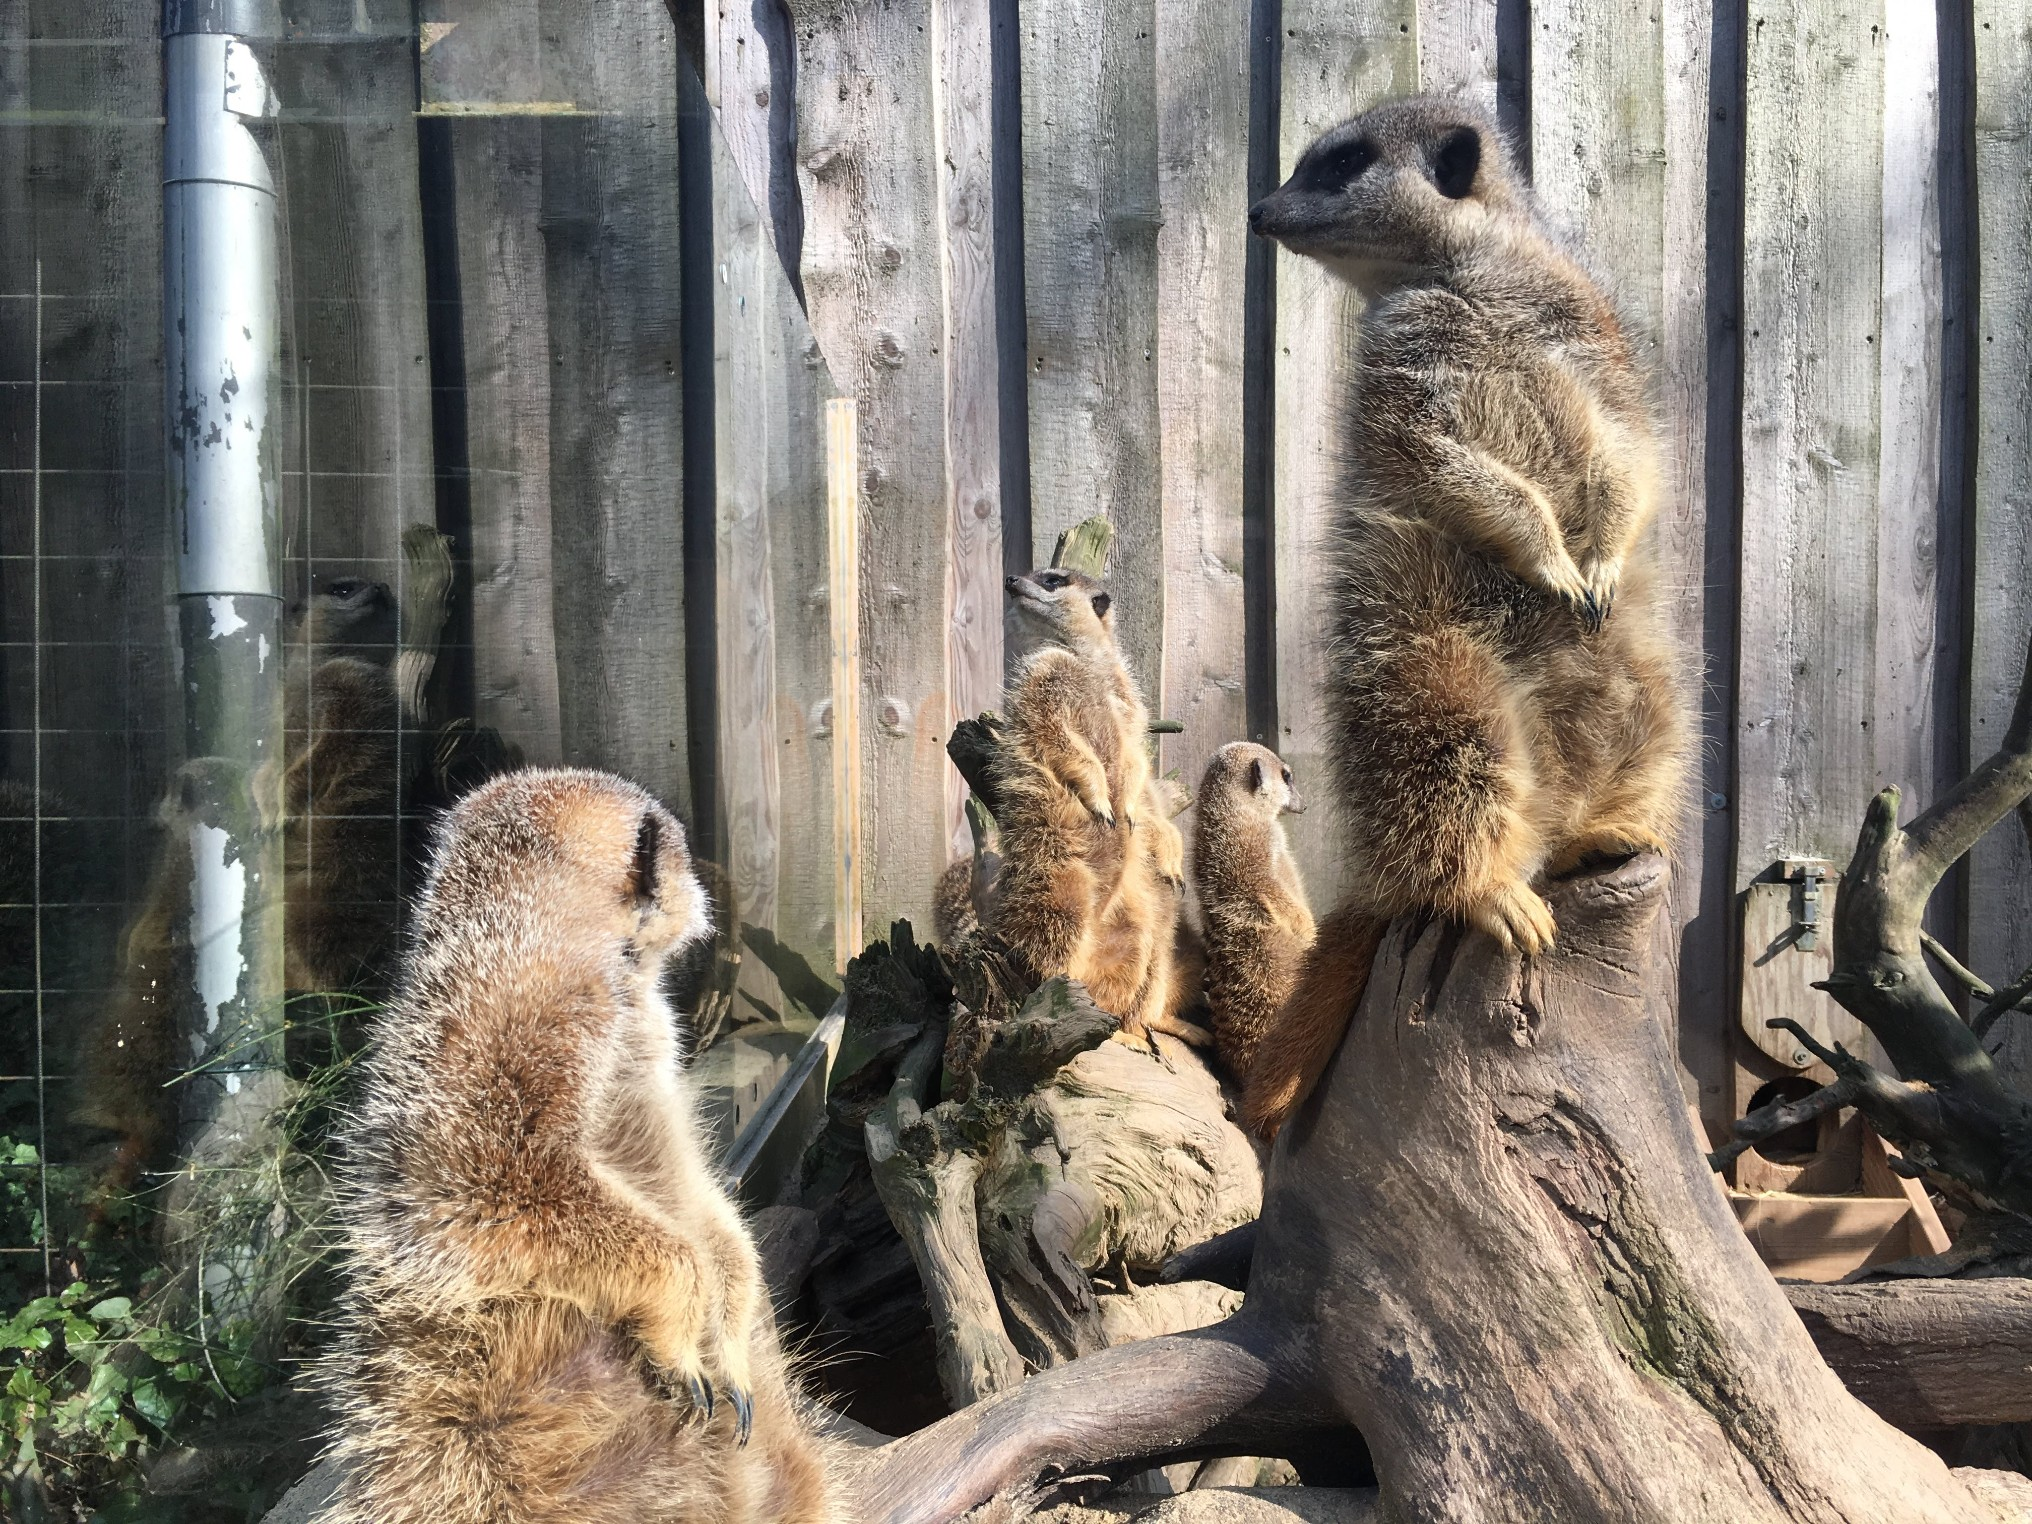 Tierpark Essehof Meerkats